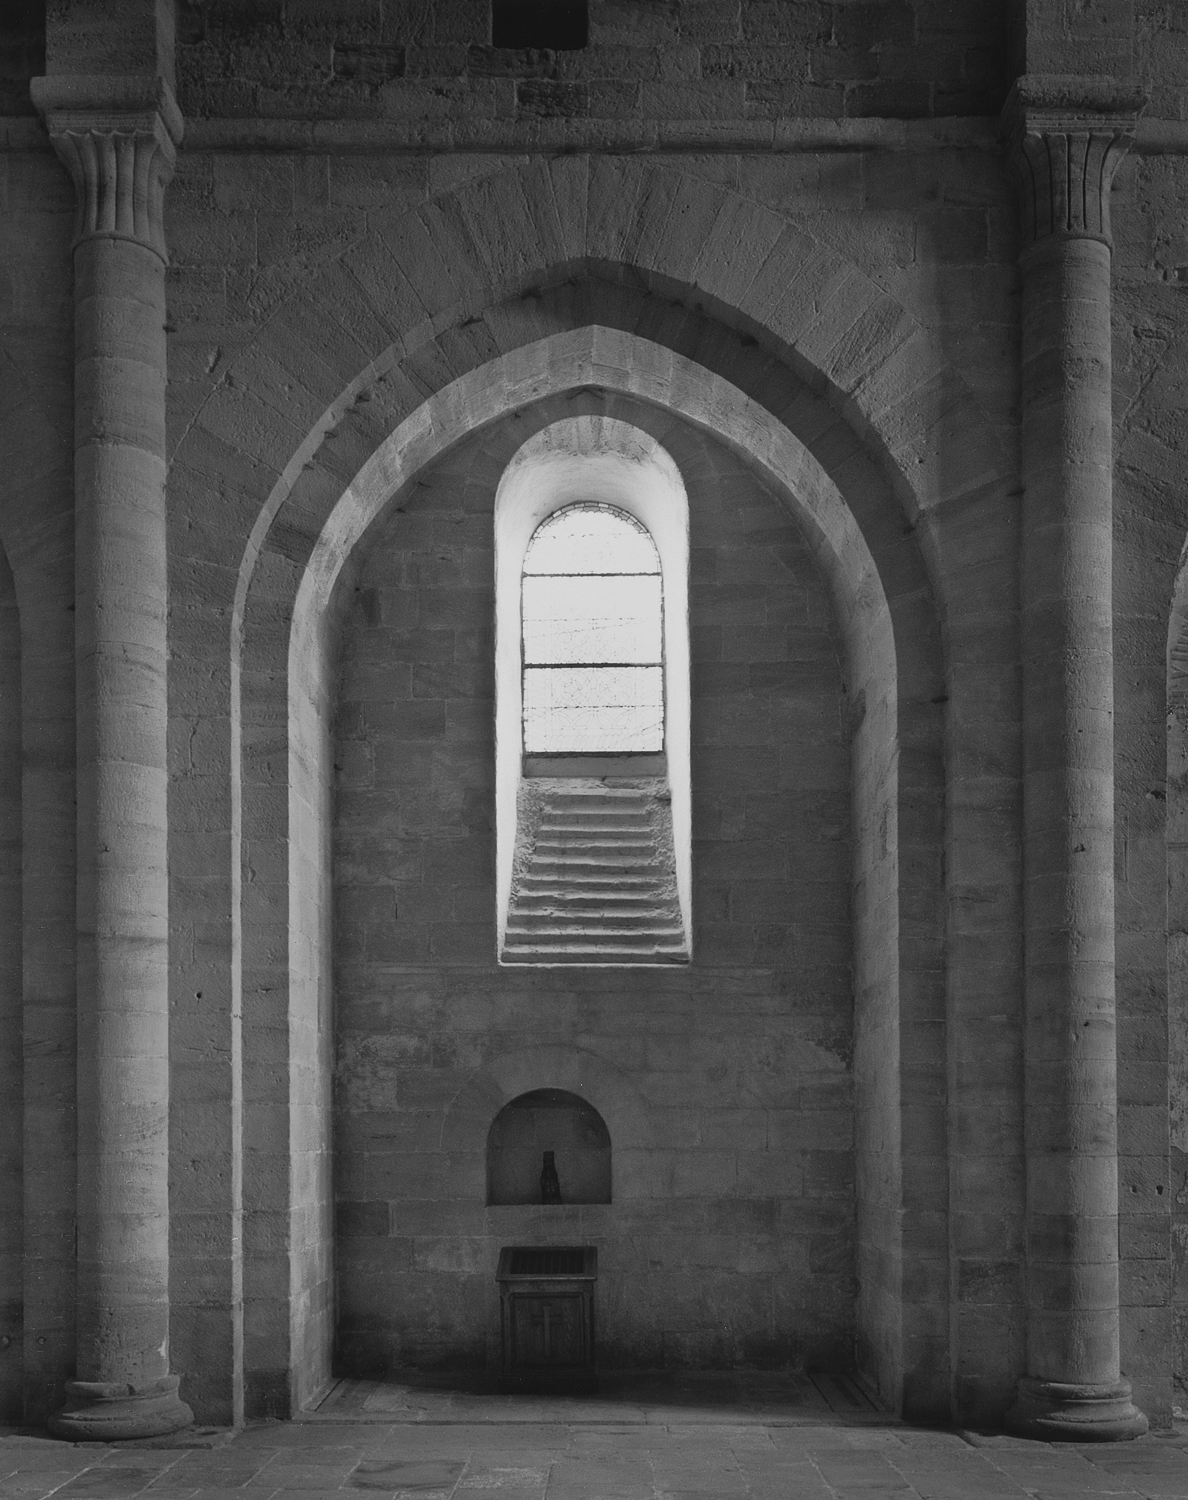 Chapel, South Side of Nave, Silvanes, 1995